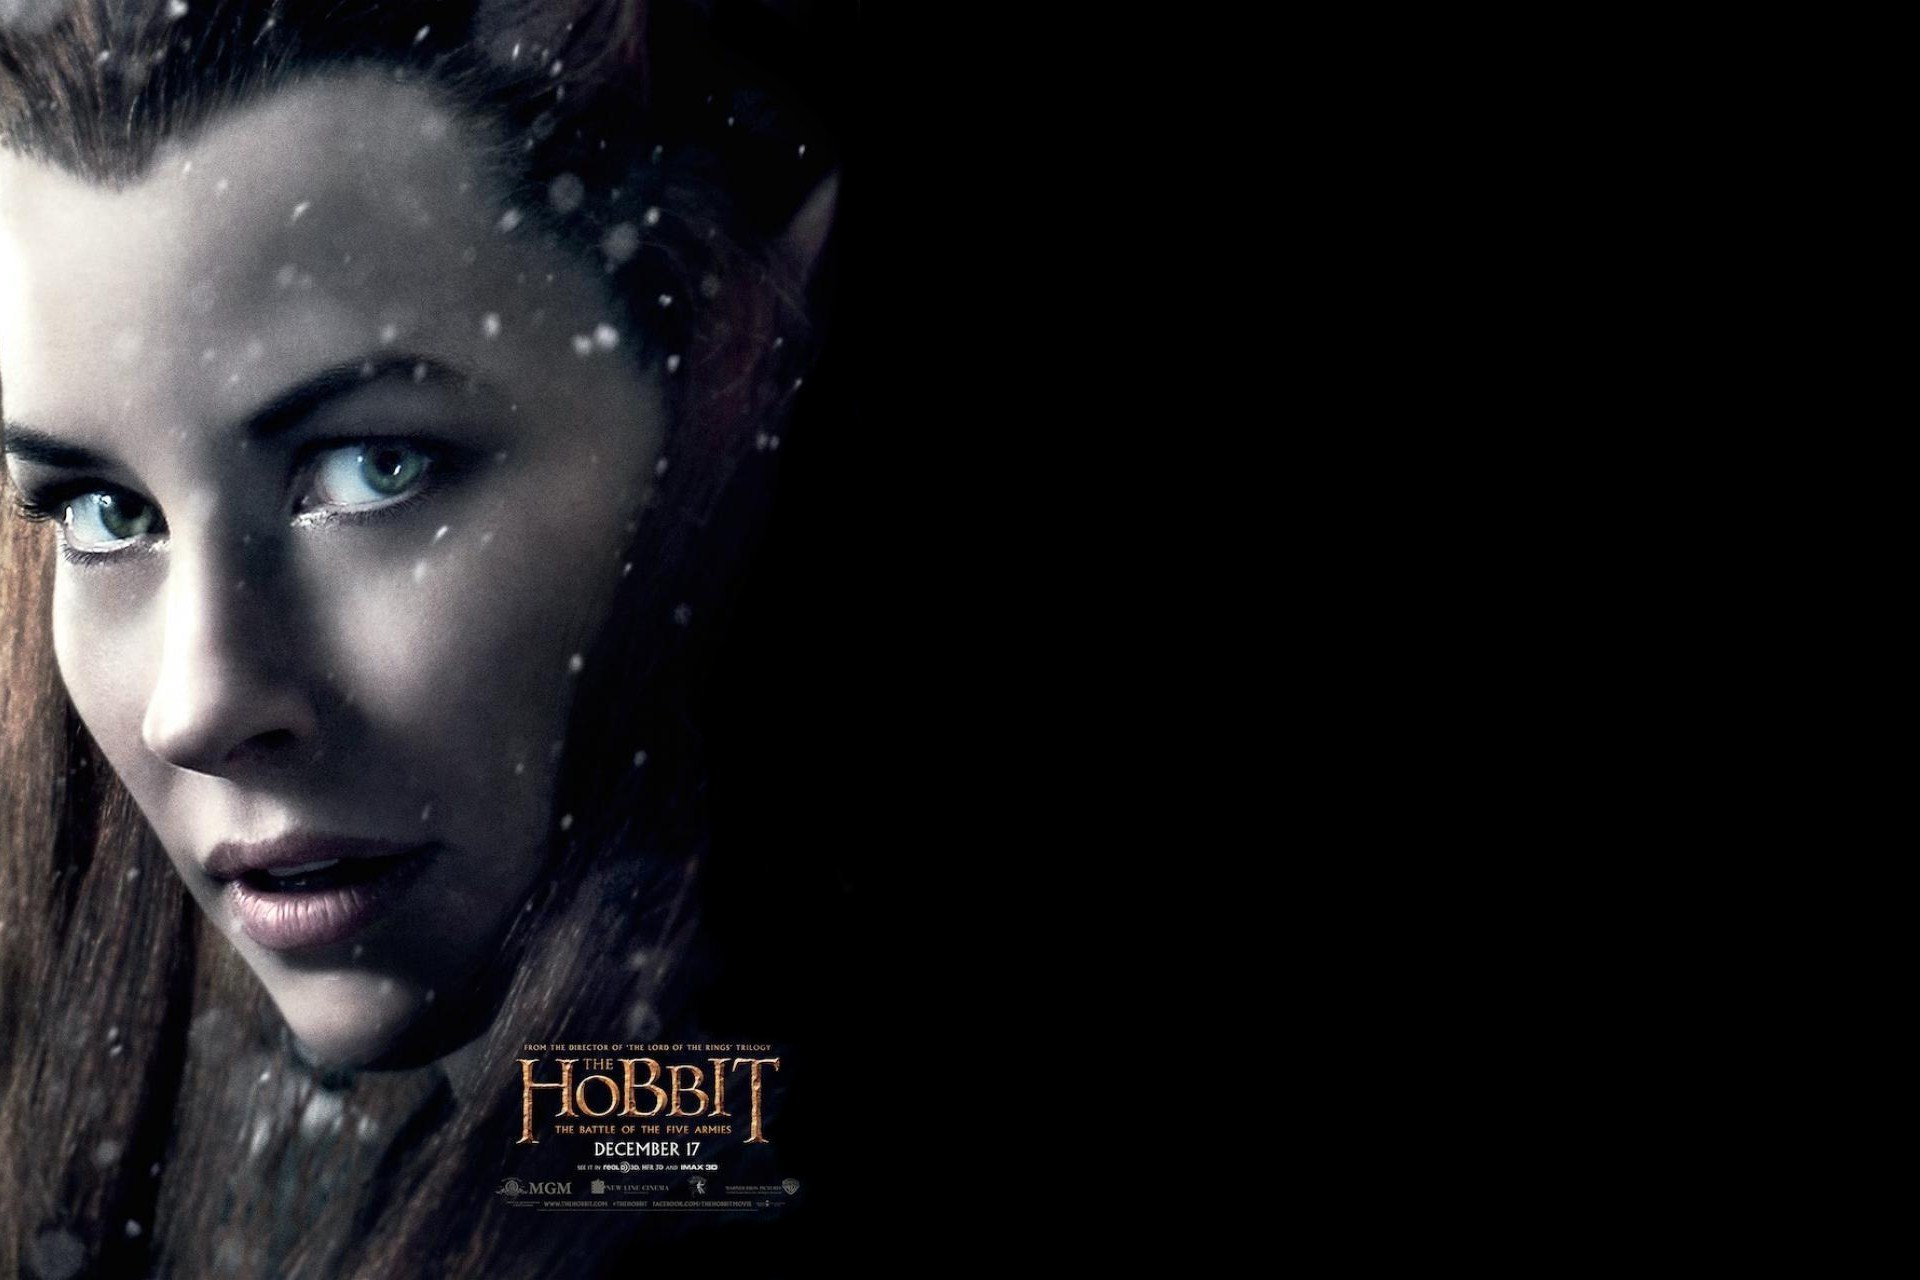 Evangeline Lilly In The Hobbit Battle of The Five Armies Wallpapers 1920x1280